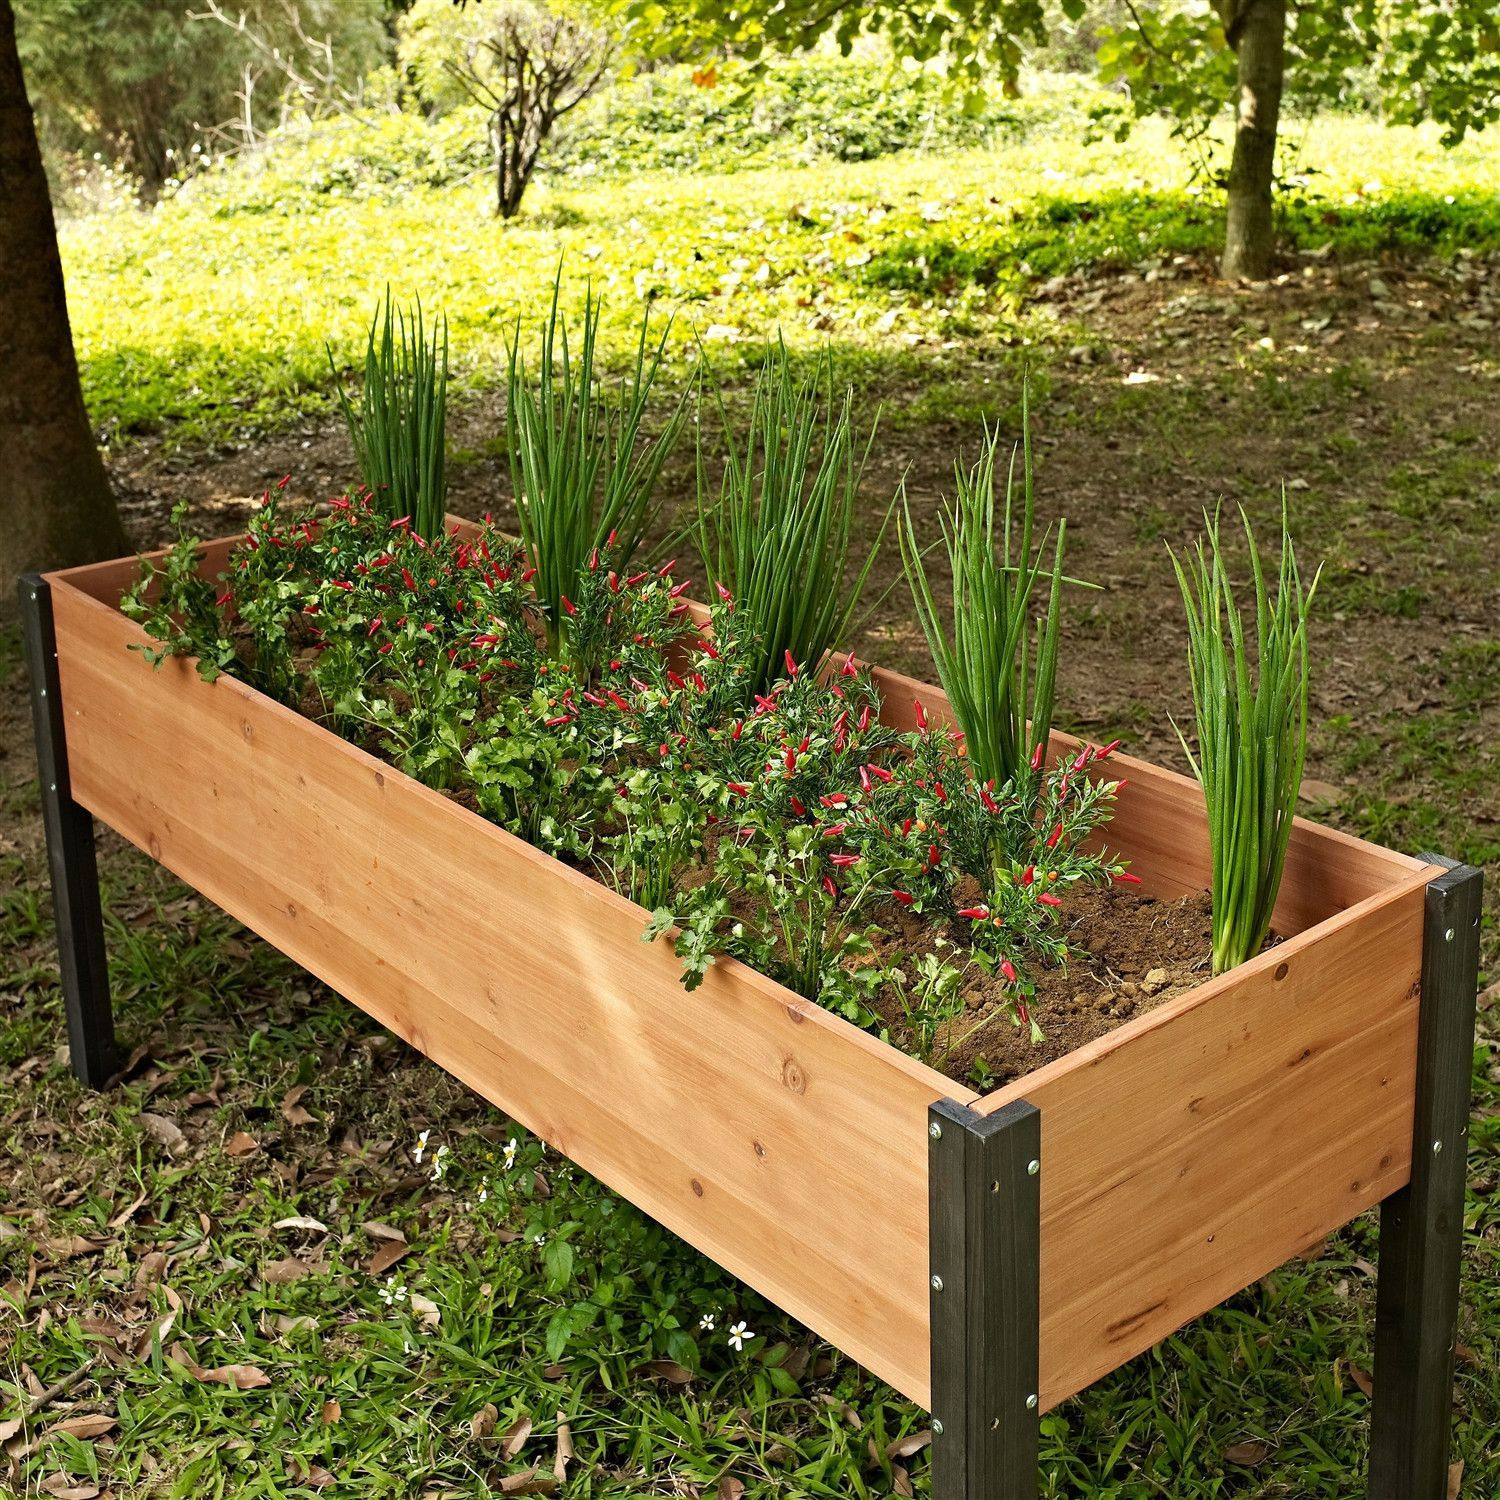 Best ideas about Raised Garden Planters . Save or Pin Elevated Outdoor Raised Garden Bed Planter Box 70 x 24 x Now.